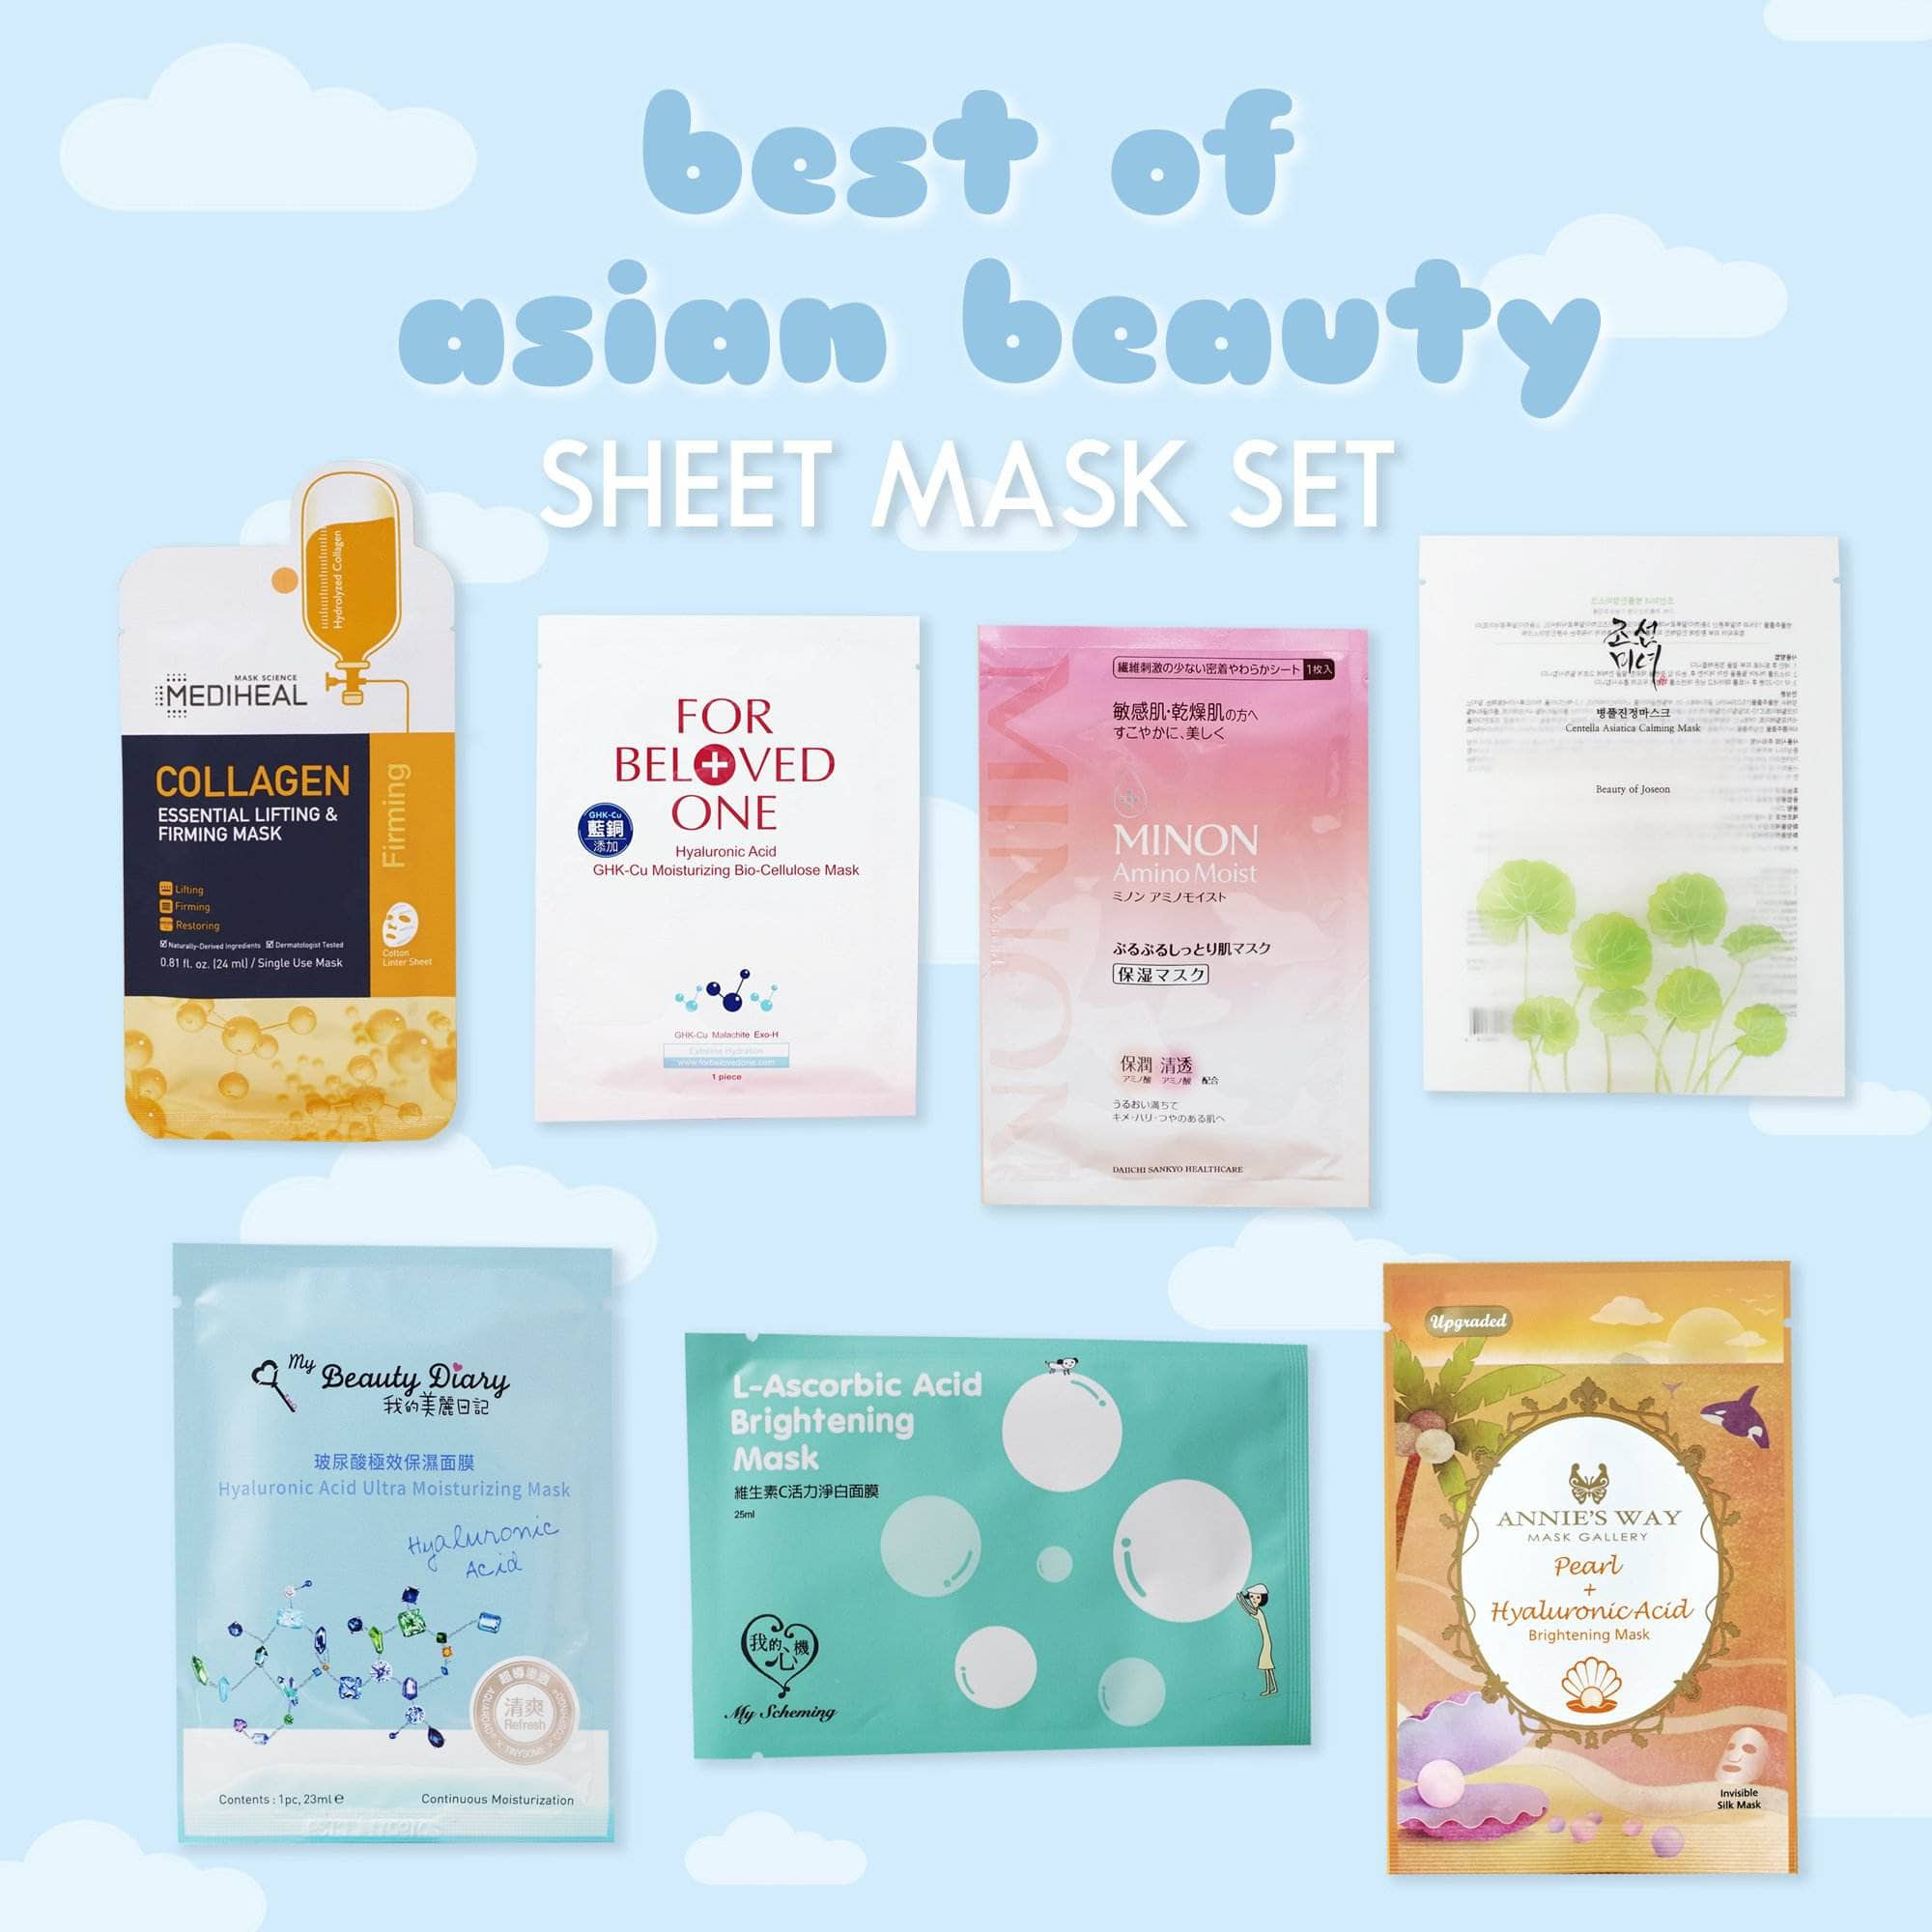 ✨ Glowie Co Best of Asian Beauty Sheet Mask Set ($32 value) ✨